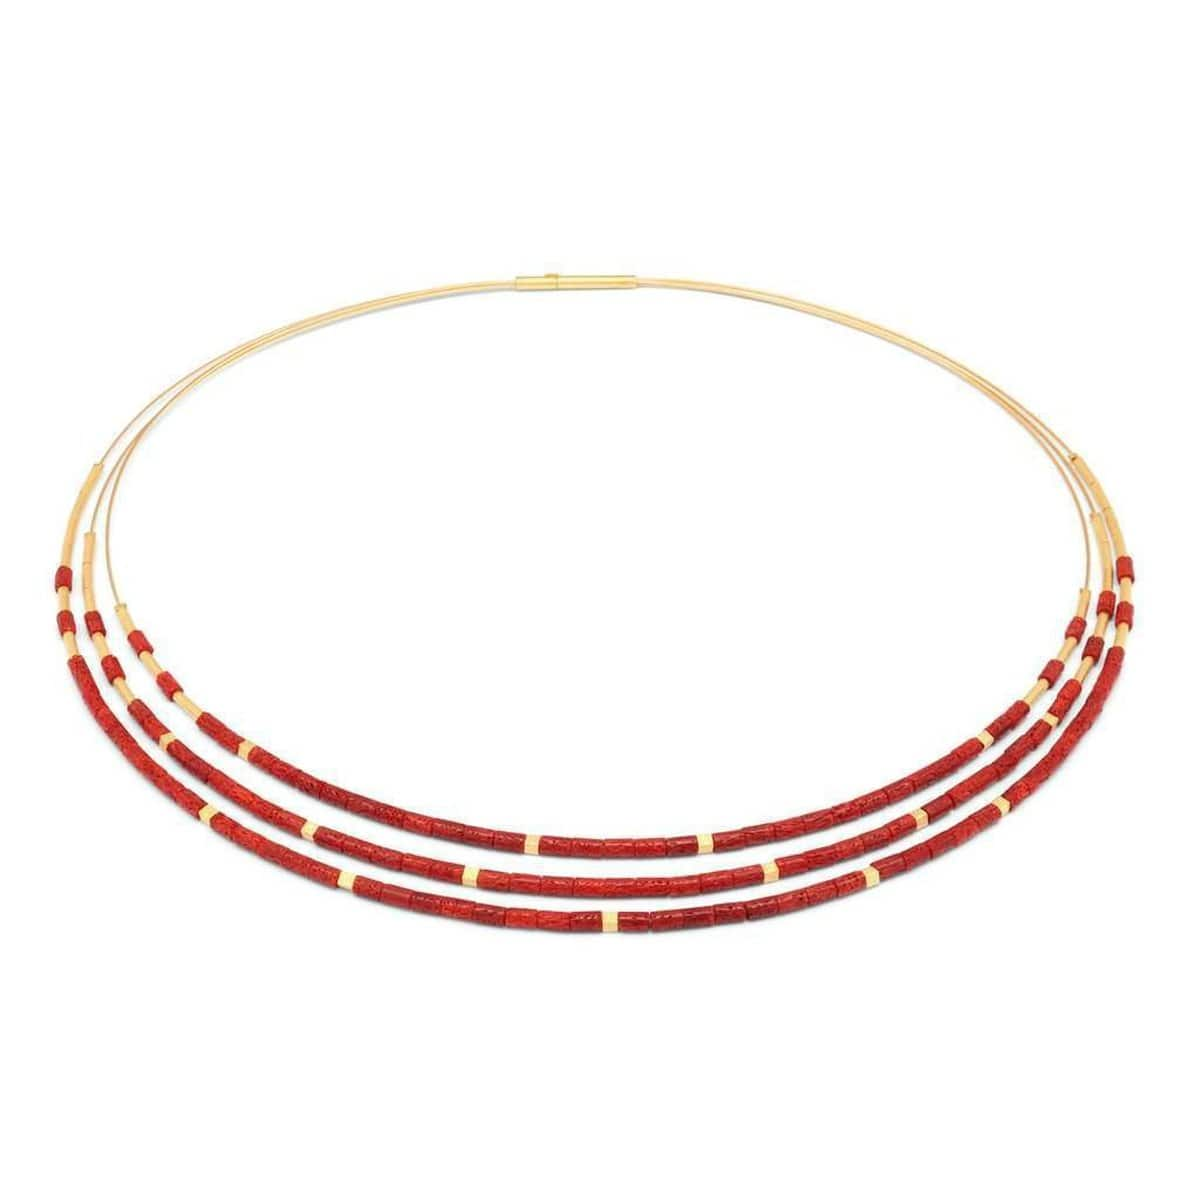 Cubaleni Red Coral Necklace - 83206296